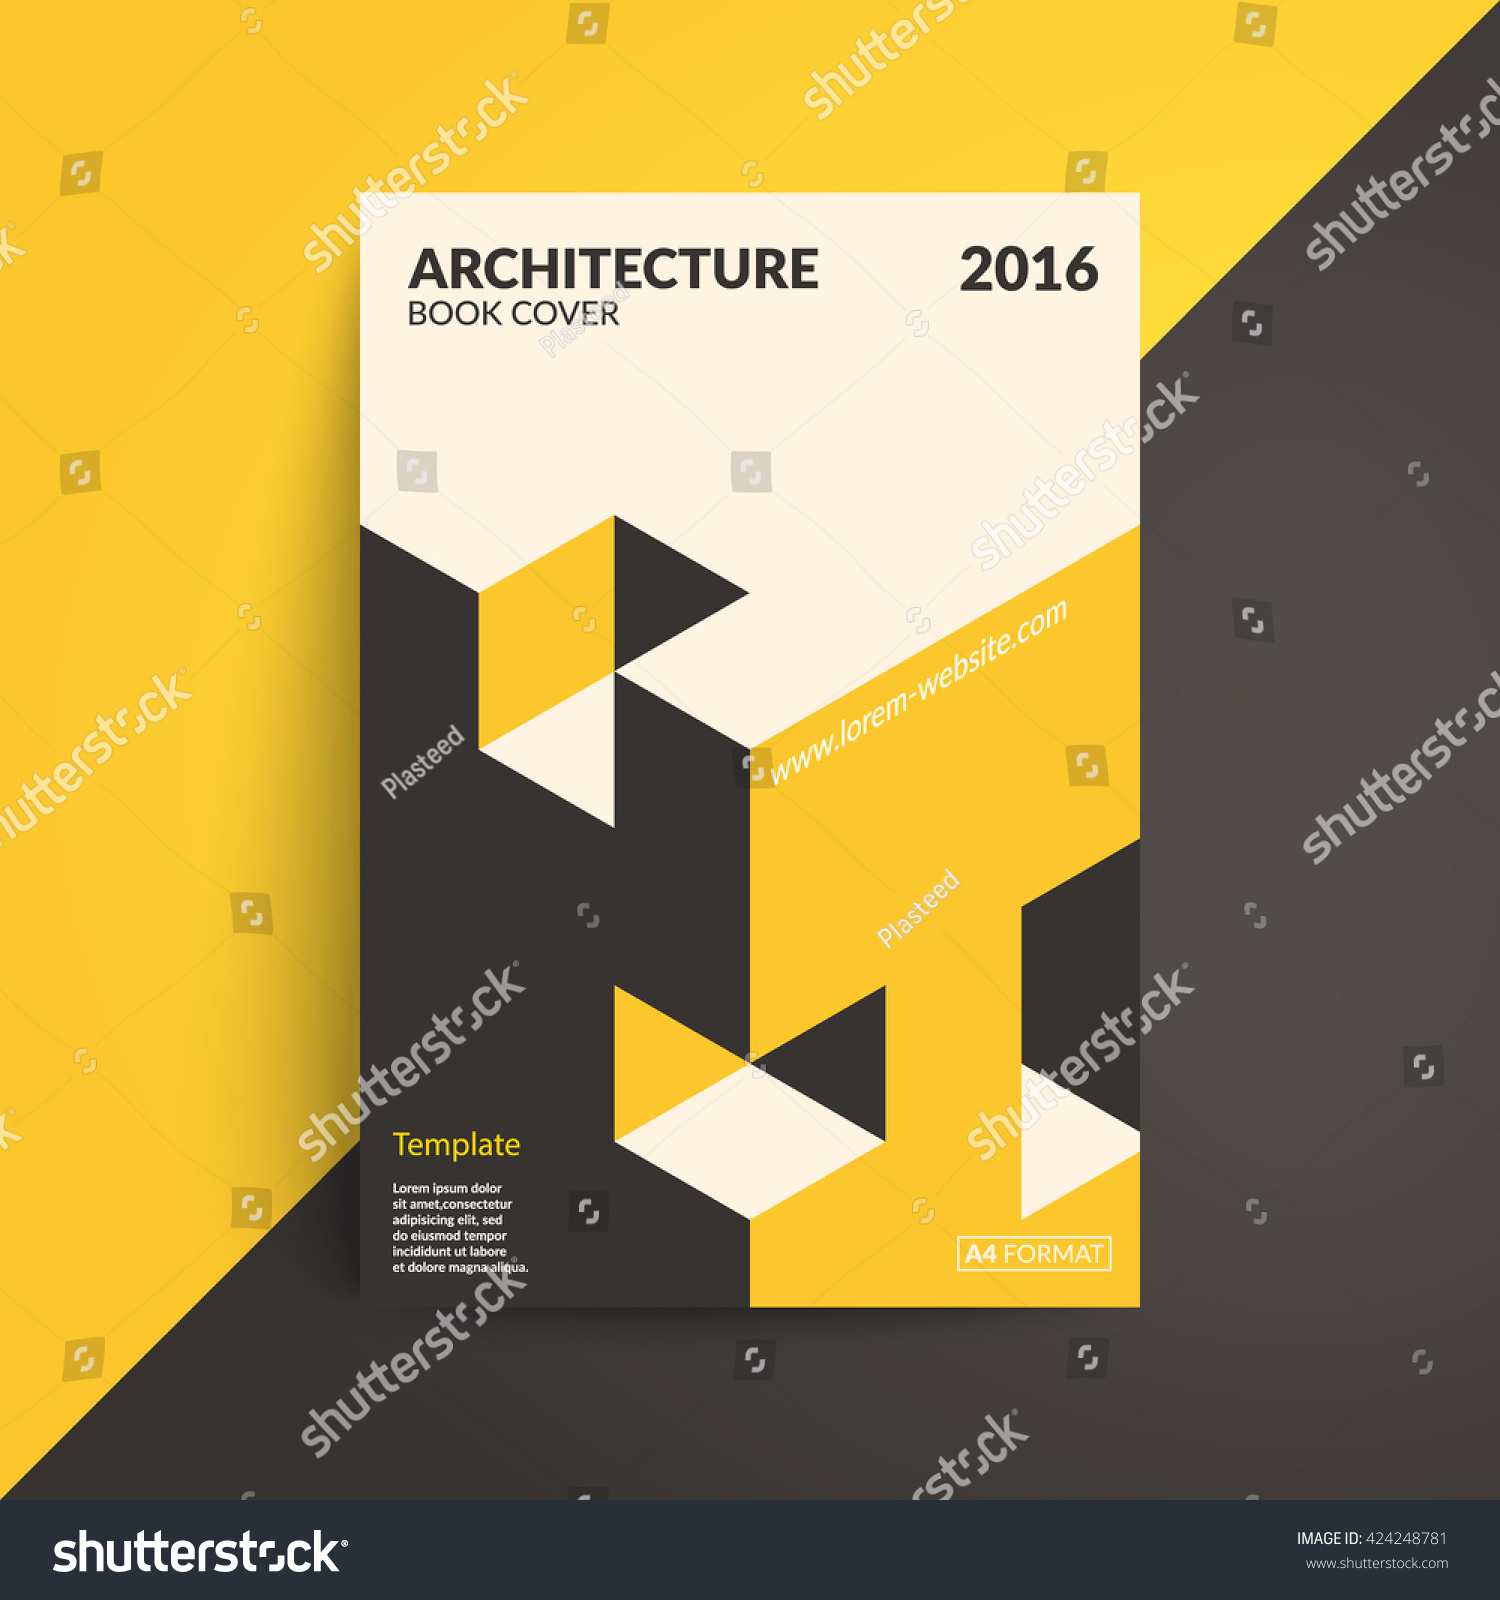 Architecture Book Cover Design : Isometric cover design architecture book a stock vector